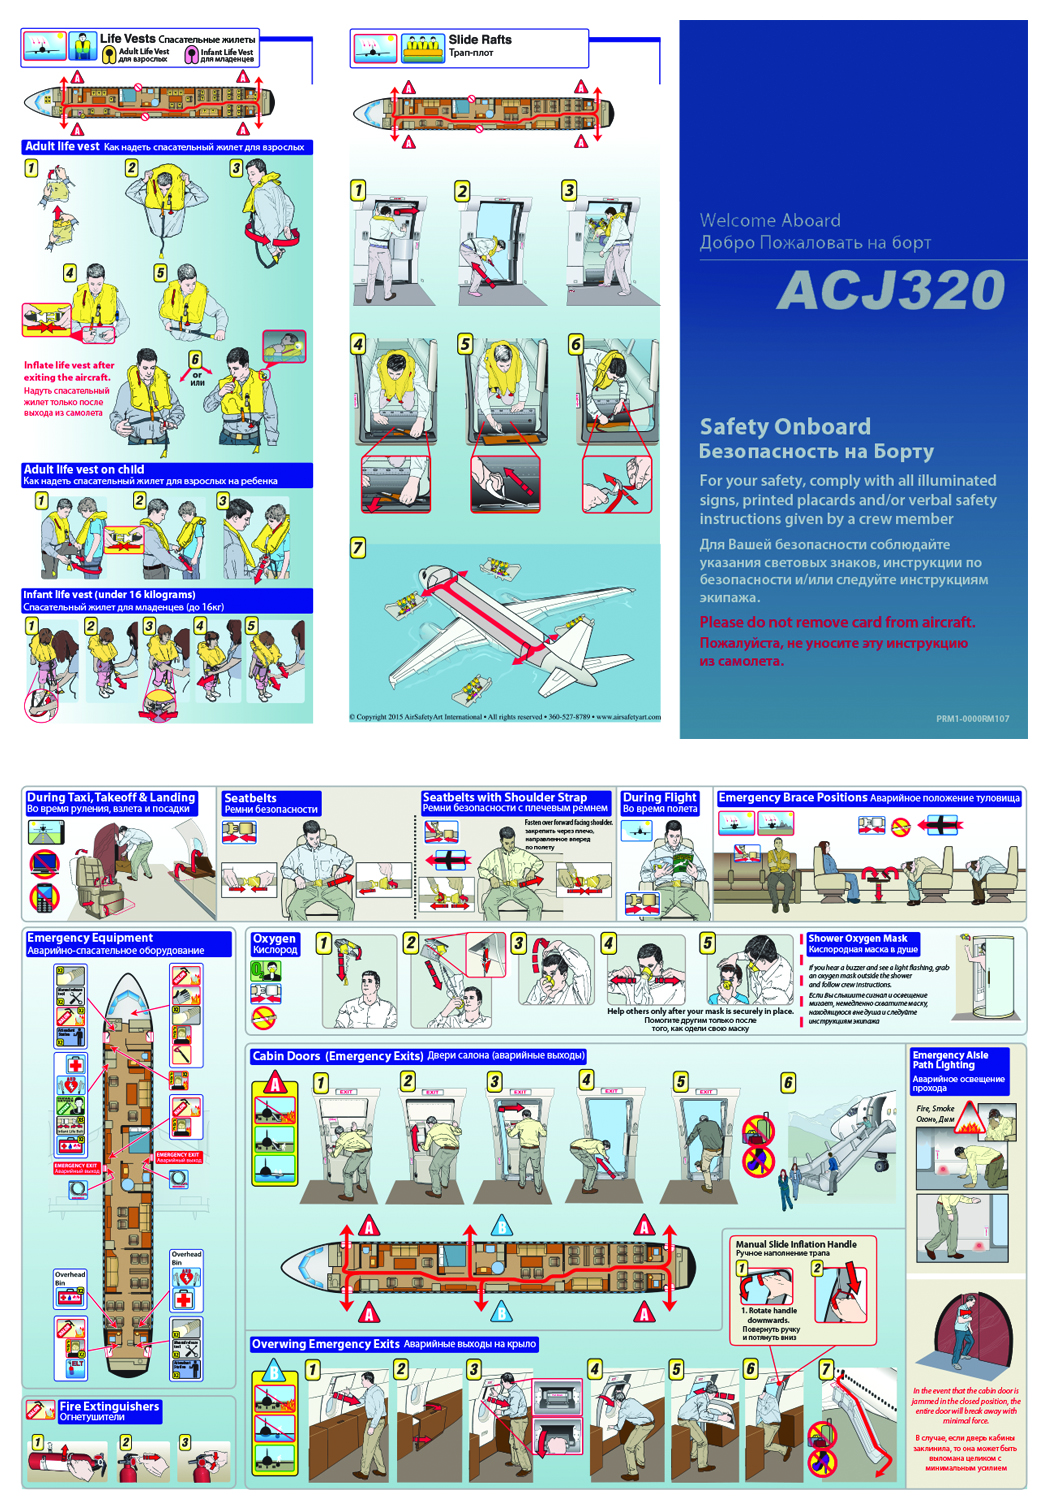 Airbus ACJ320 Safety Briefing Card